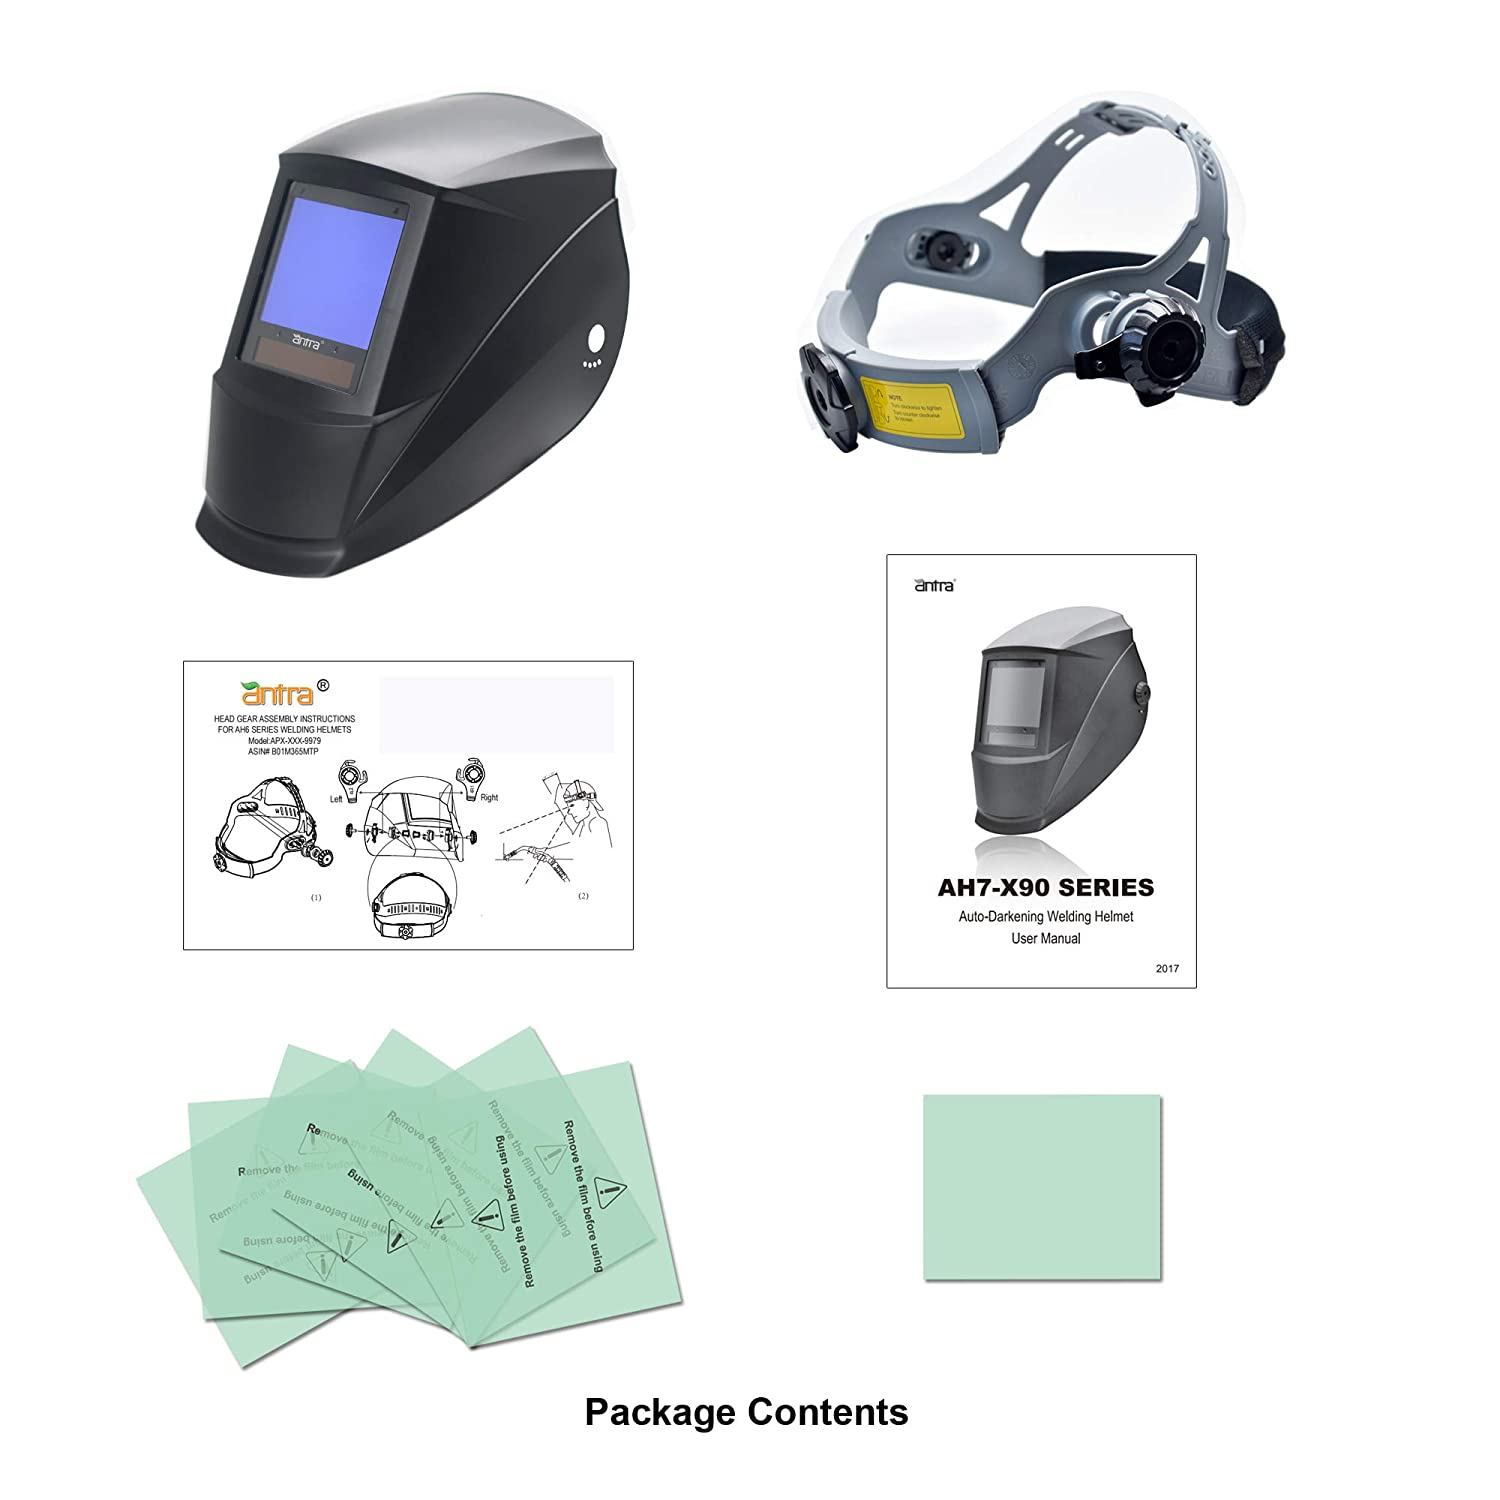 42be37ae6cc35 Antra AH7-X90-0000 TOP Optical Class 1 1 1 1 Digital Controlled Solar  Powered Auto Darkening Welding Helmet Wide Shade 4 5-9 9-13 With Grinding  Feature ...